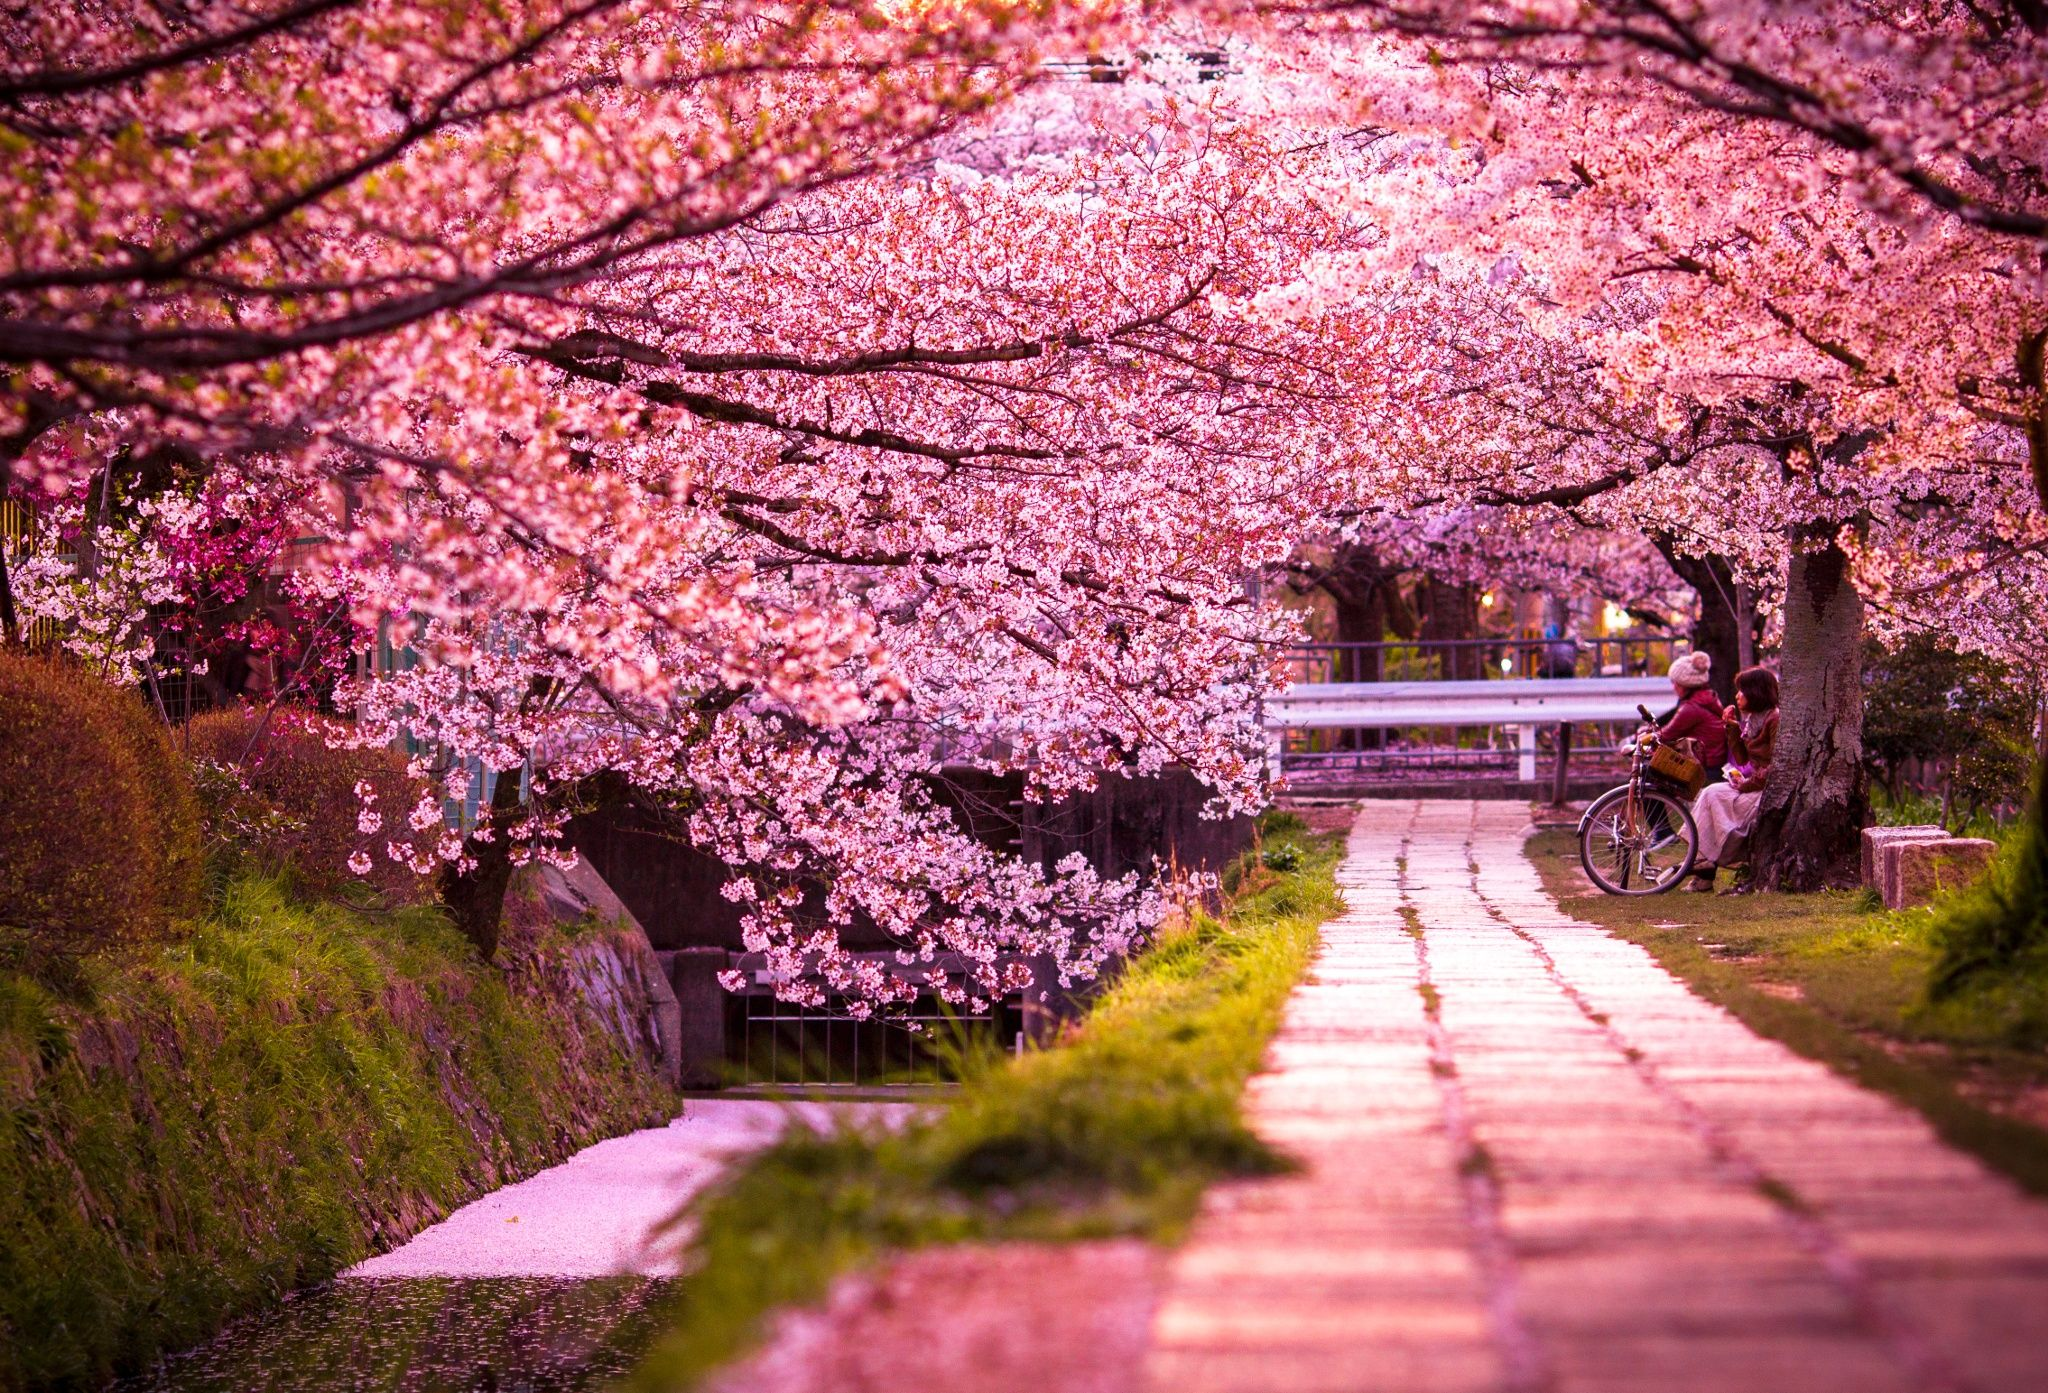 Philosopher S Path Beautiful Streets Cherry Blossom Festival Nature